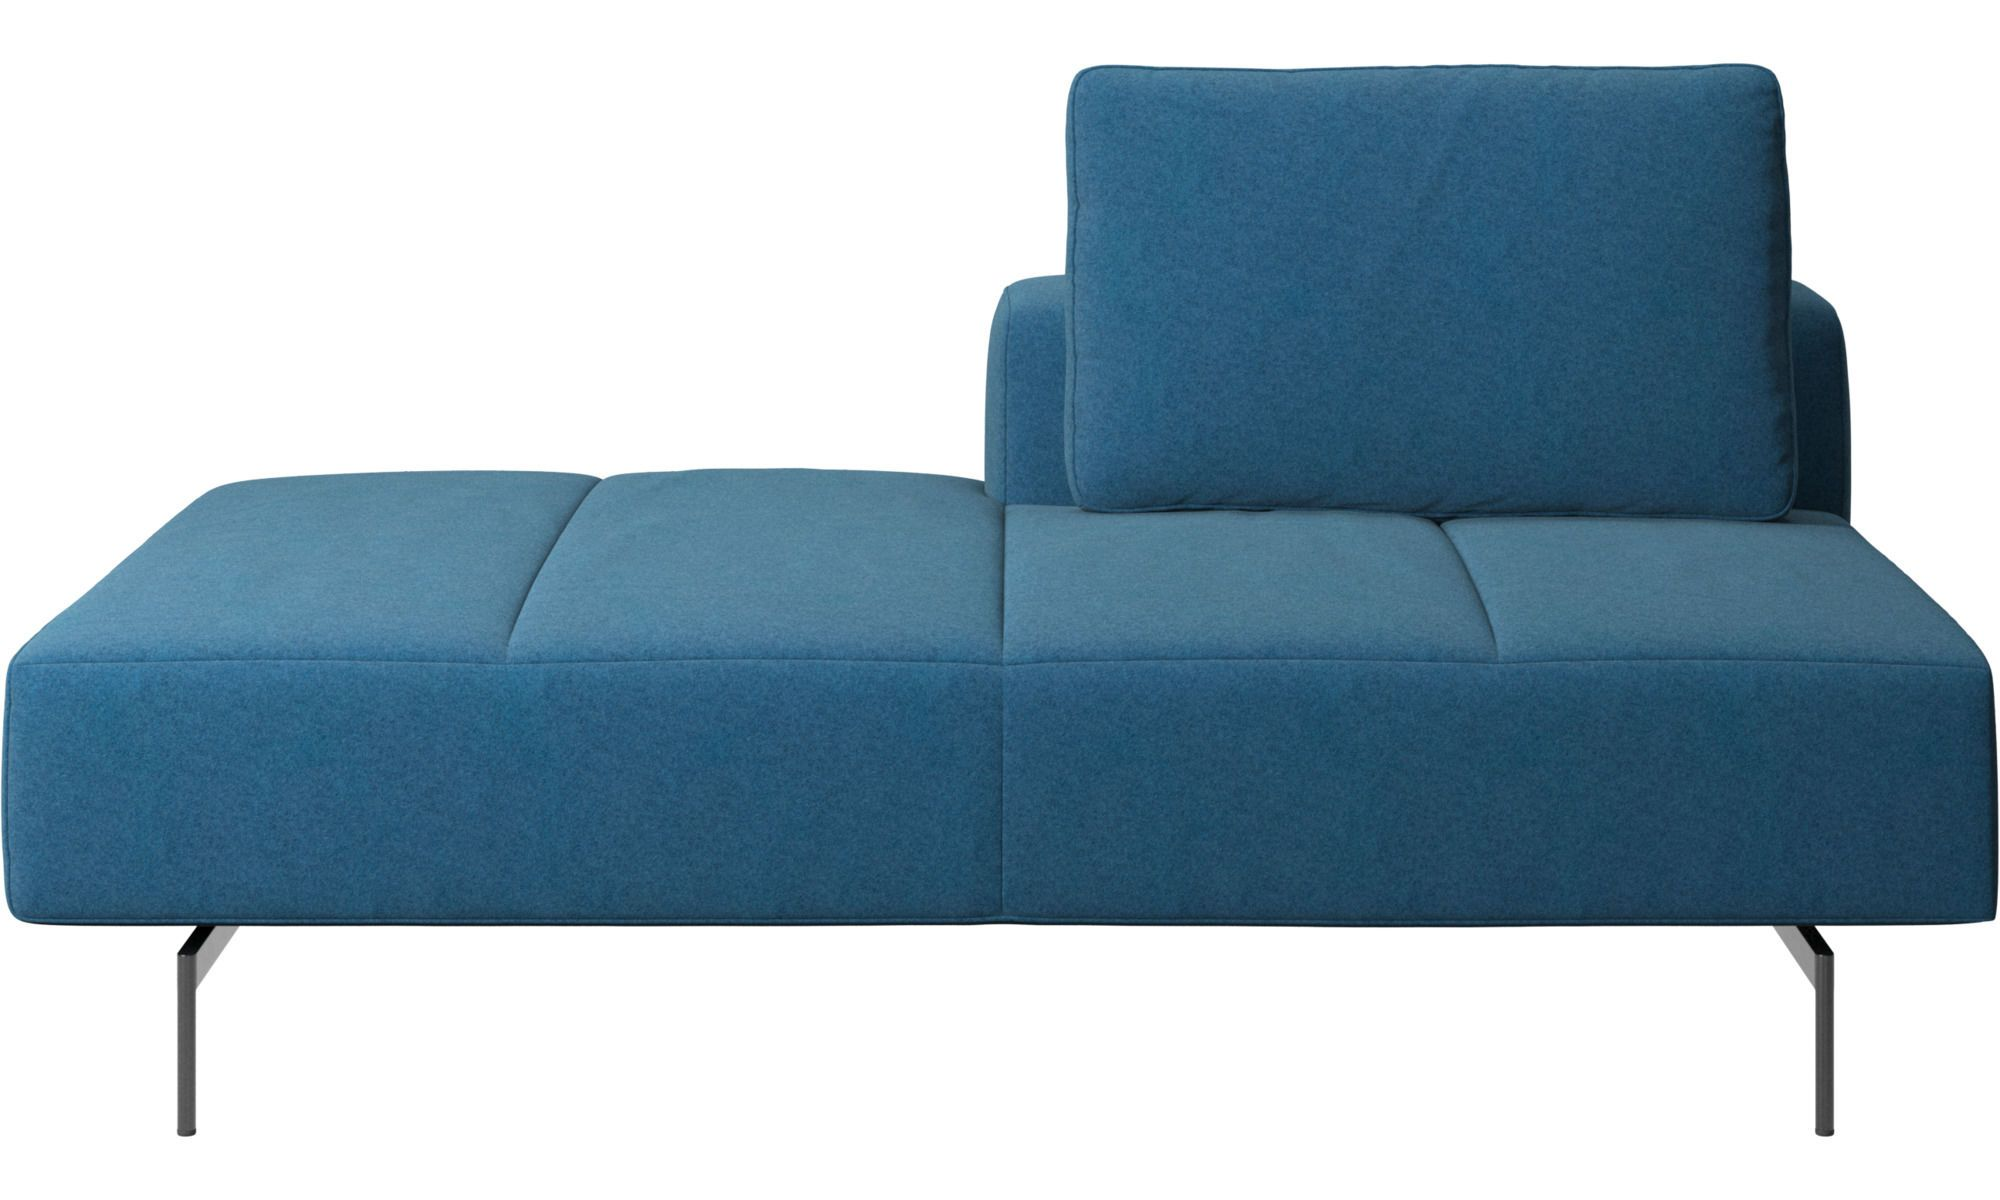 Amsterdam Iounging Module For Sofa Back Rest Right Open End Left Occasional Chairs Sofa Blue Fabric